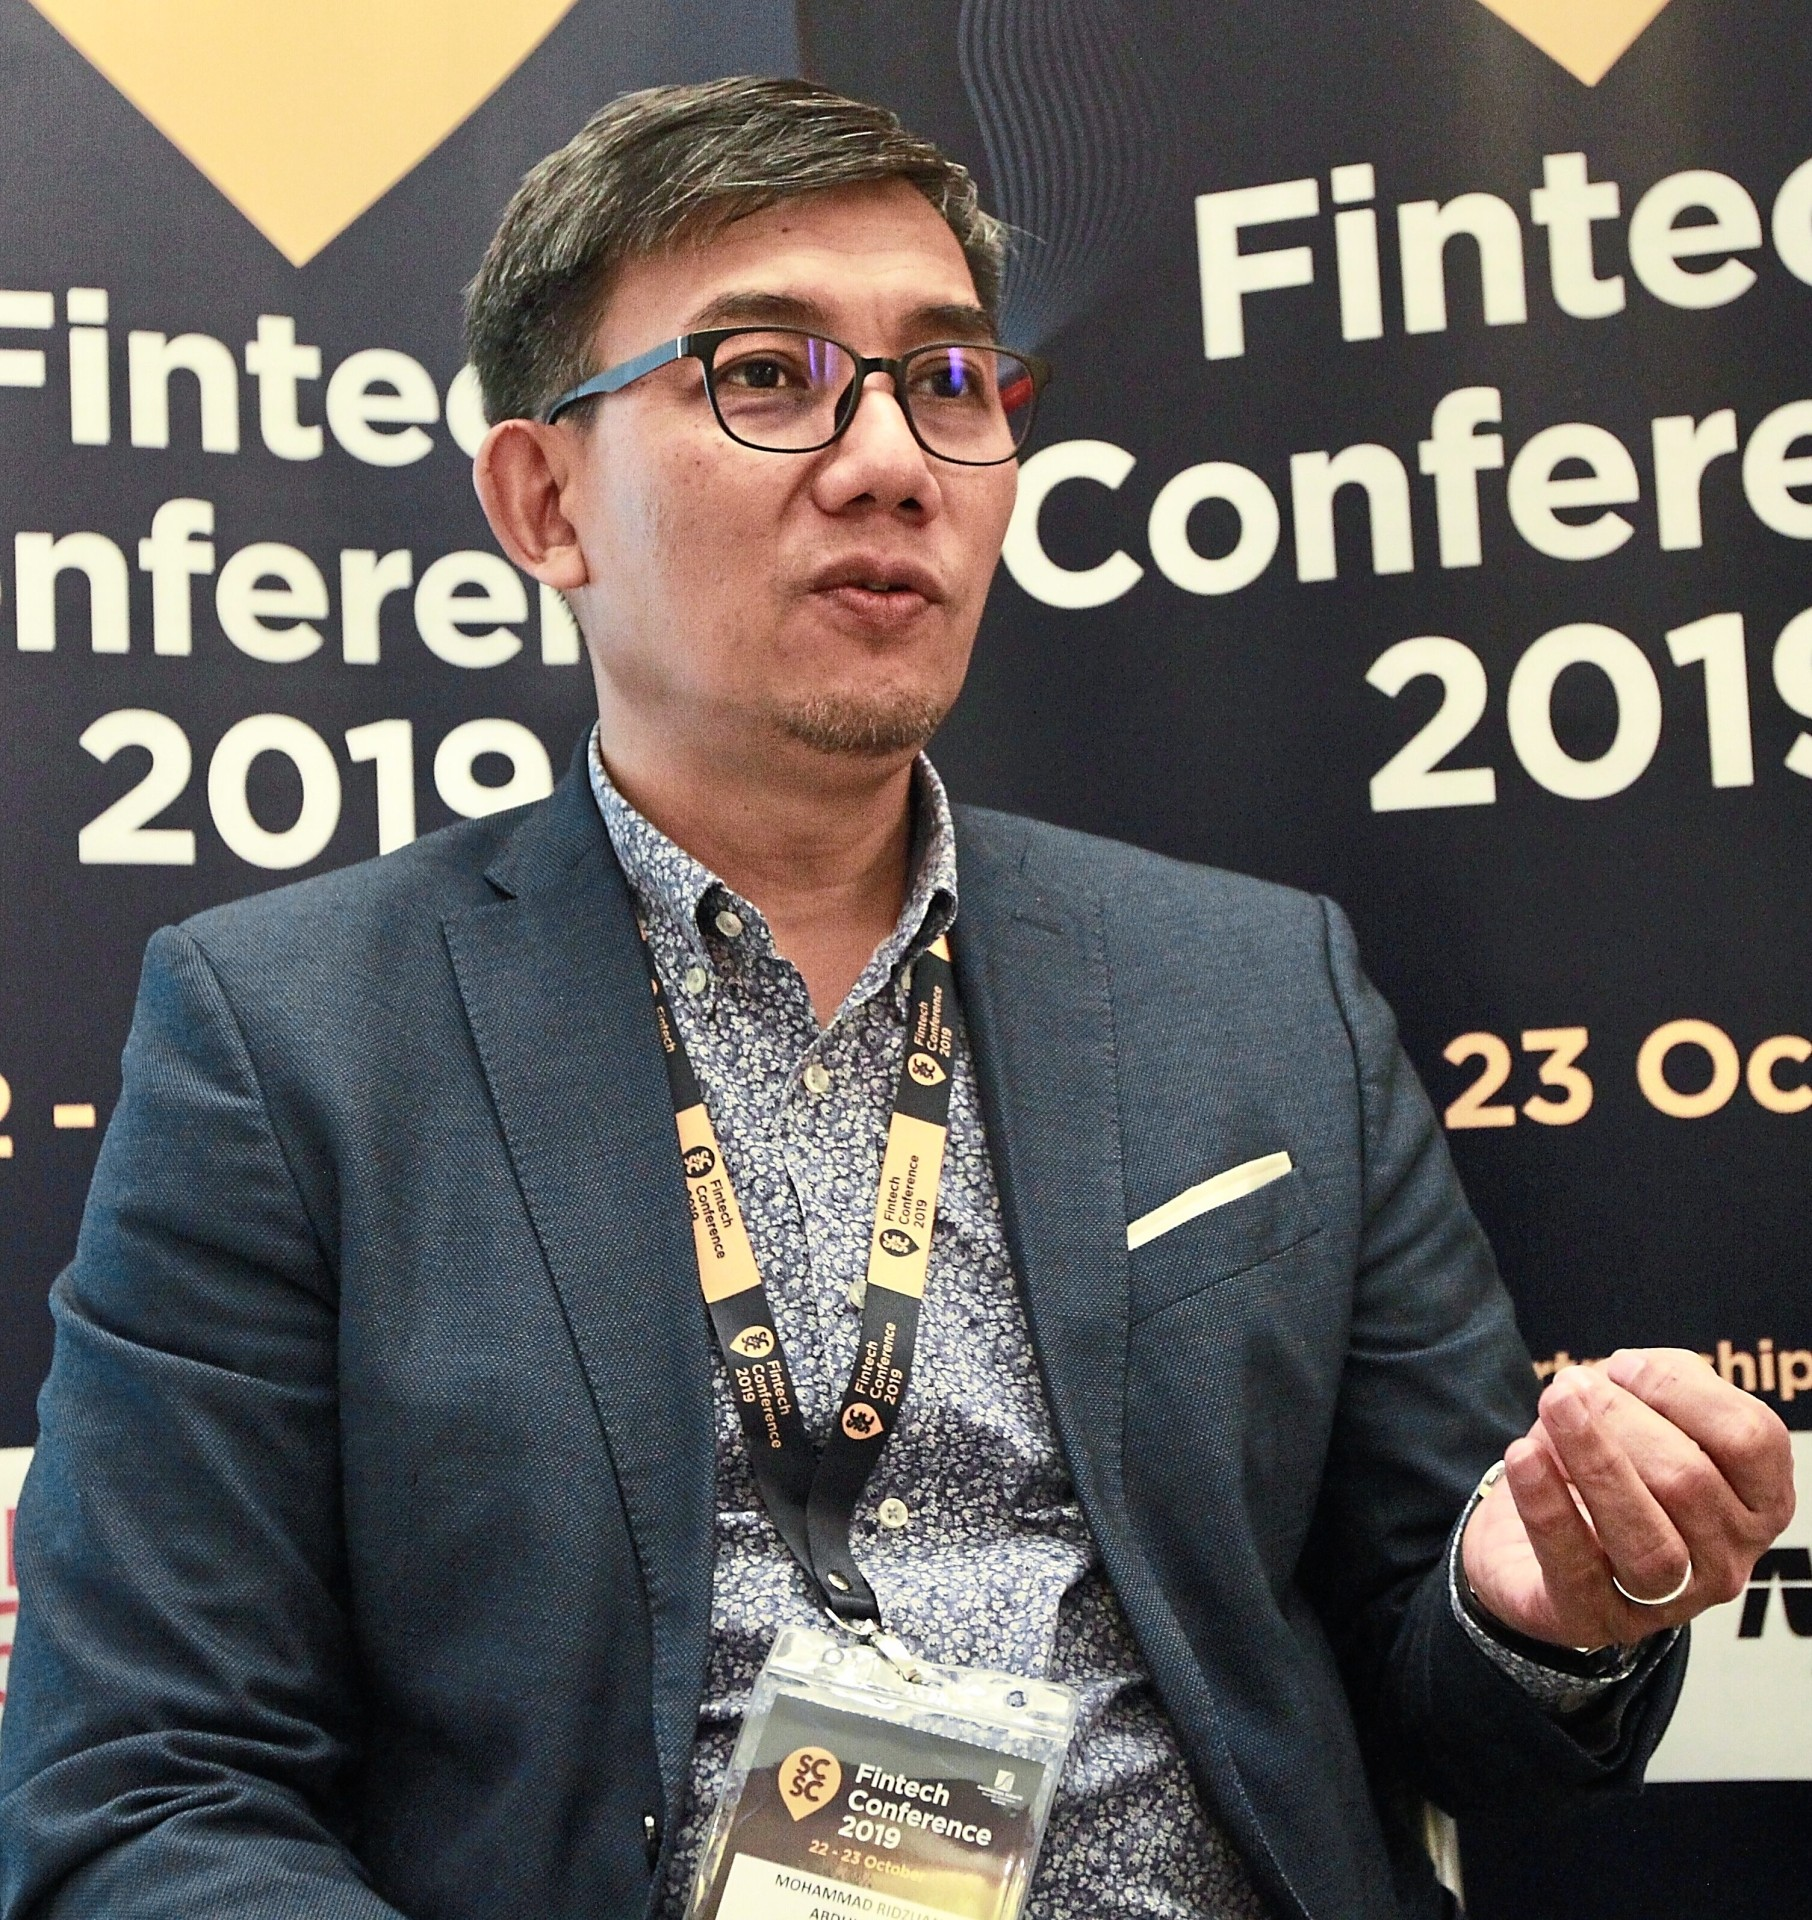 'Innovative companies are able to reach out based on the strength of their ideas without needing connections,' said Mohammad Ridzuan. — NORAFIFI EHSAN/The Star